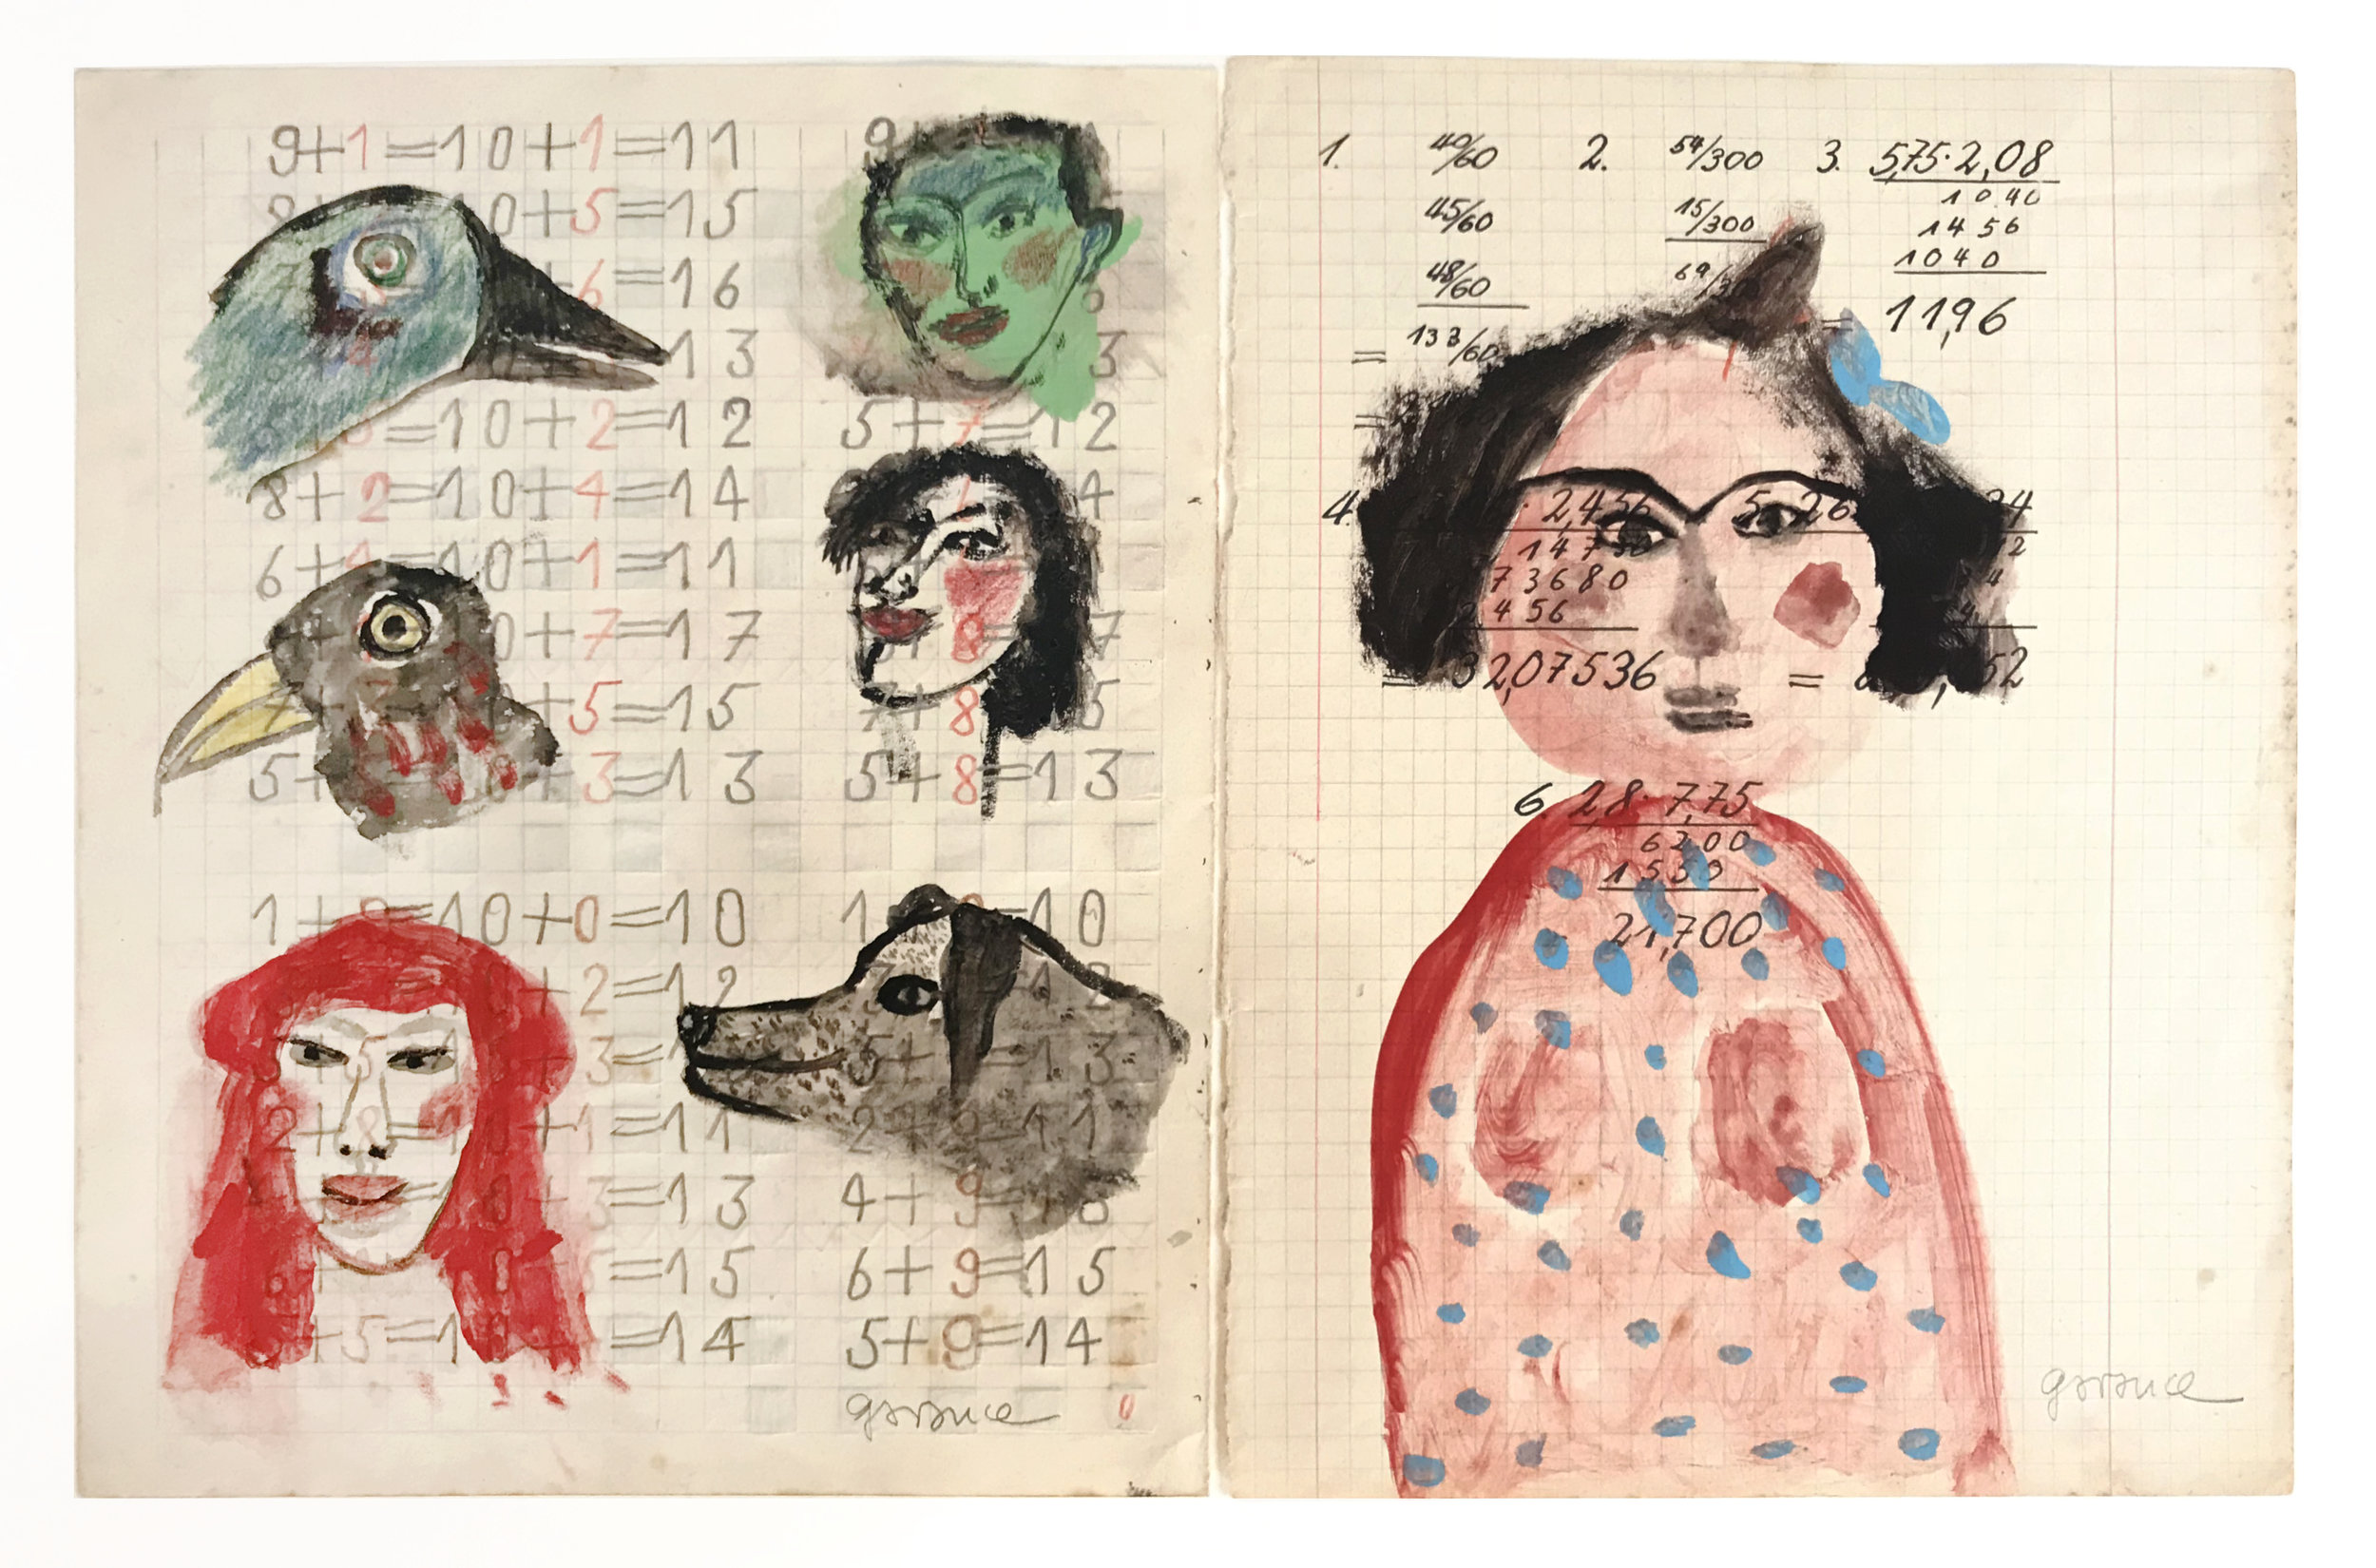 - Two Birds, a Man with a Green Face,a Dog, a Woman with Black Hair, a self-portrait, and a Woman with a Blue Bowc. 2013Acrylic on paper8 ½ x 13 3/4 inches (in 2 parts)